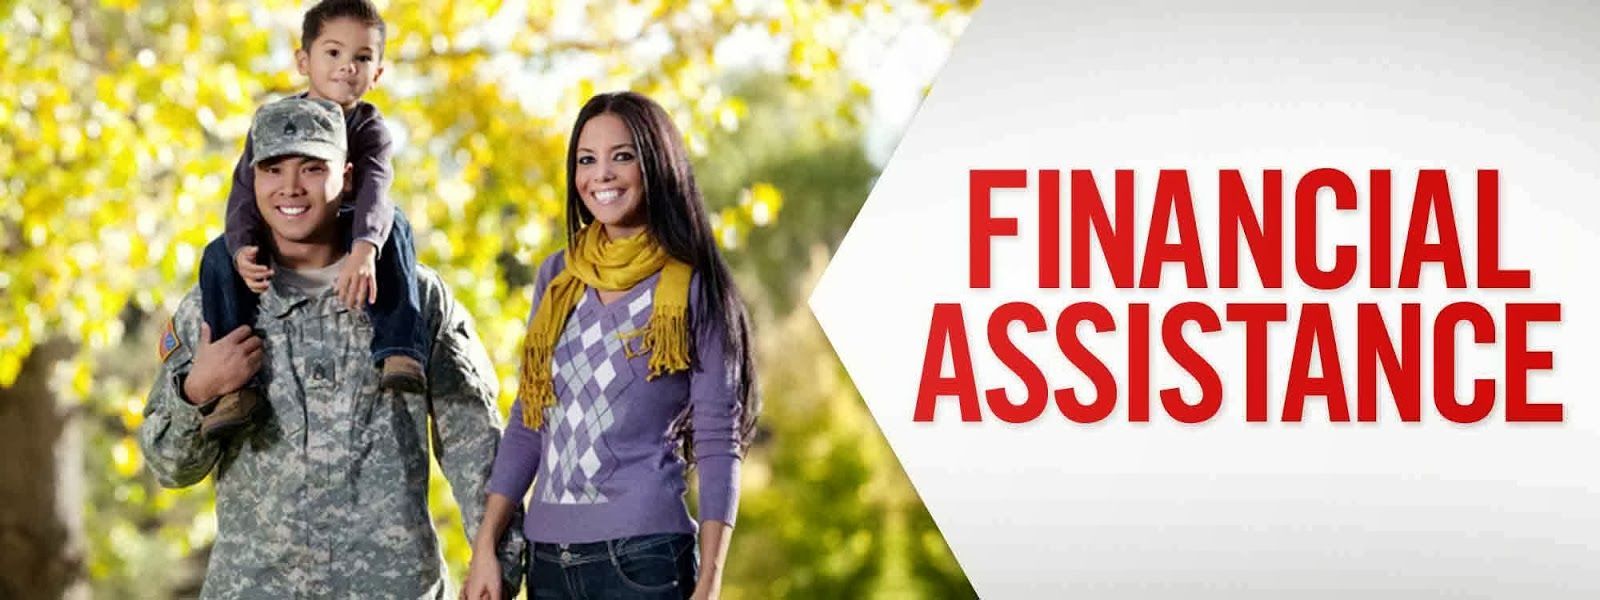 get financial assistance from the government | places to visit